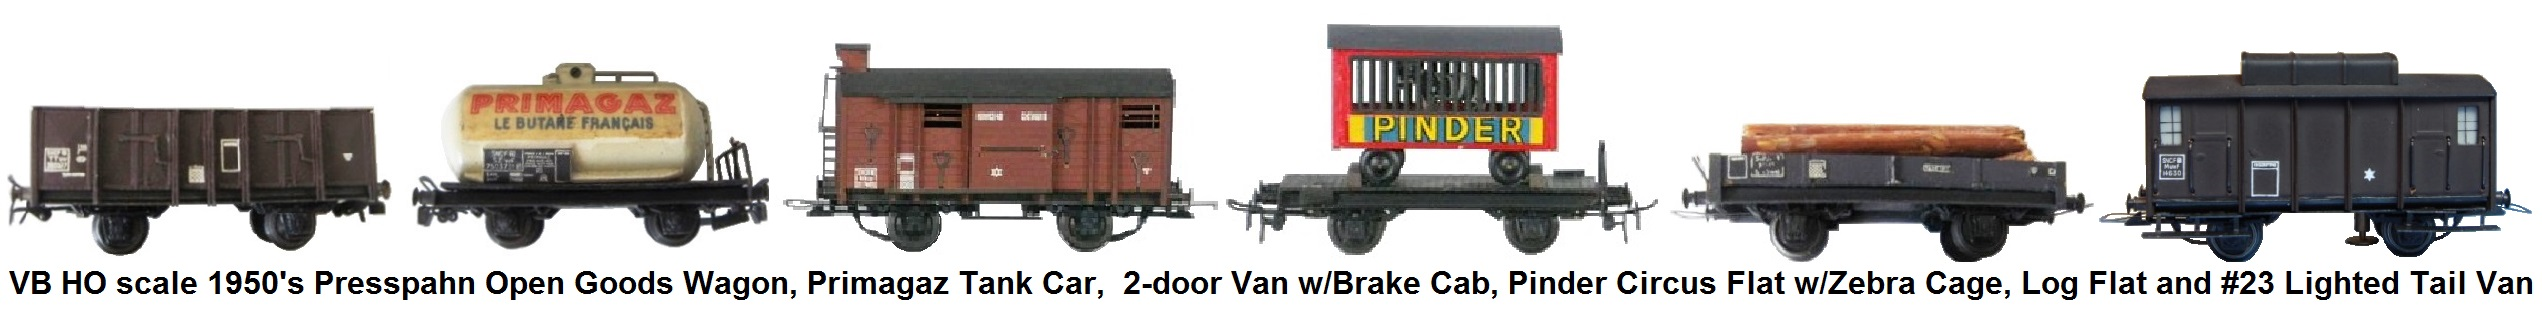 VB HO scale 1950's Presspahn Freight Wagons, includes an Open Goods Wagon, Primagaz Tank Wagon, 2-door Van with Brake Cab, Pinder Circus Flat with Zebra Cage, Log Flat and #23 Lighted Tail Van